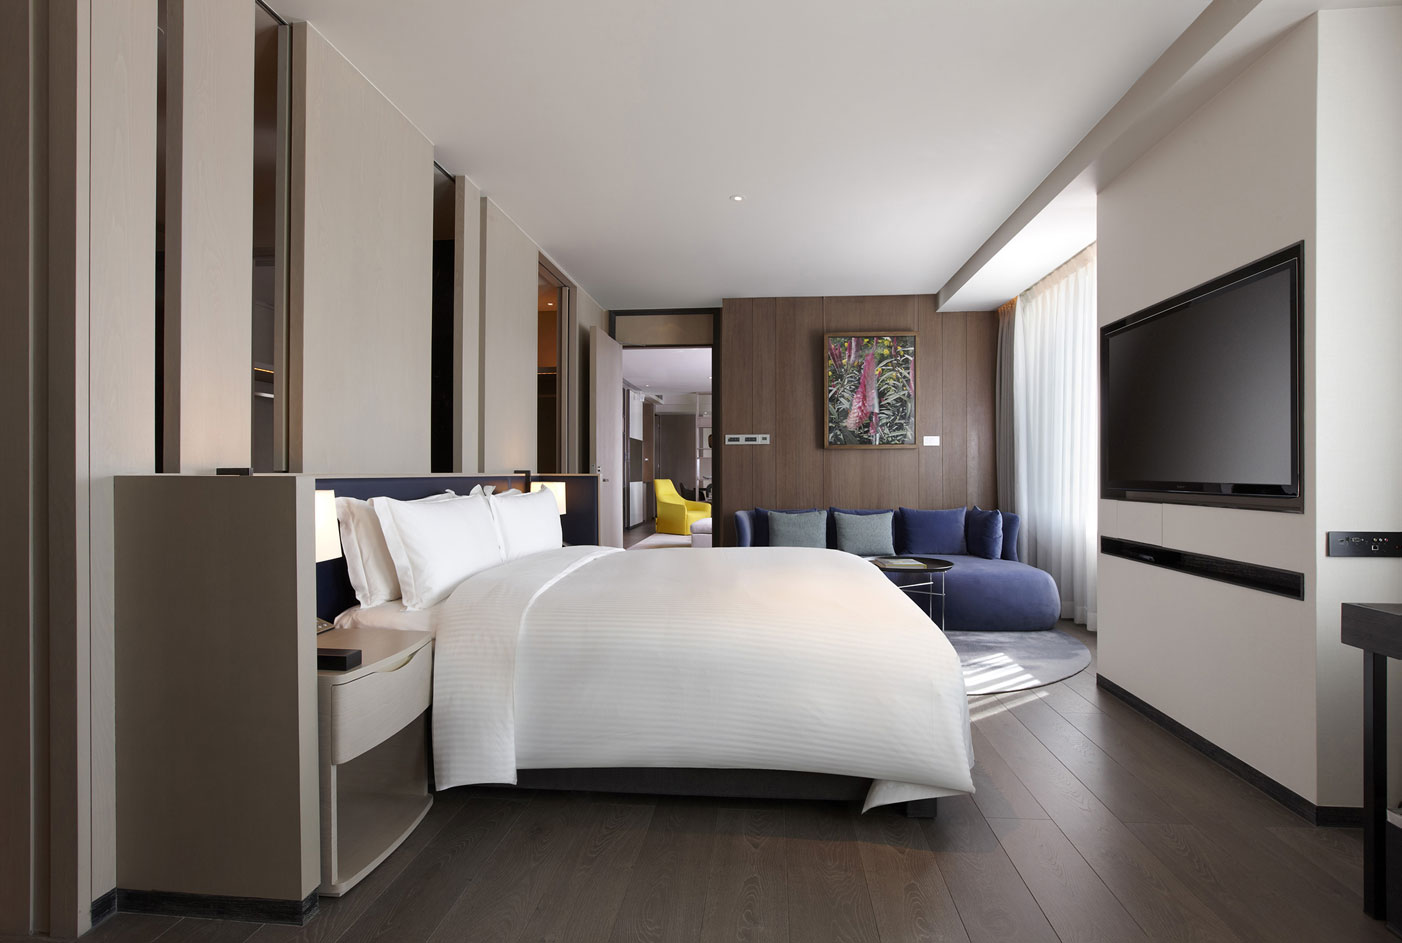 Humble house taipei rooms humble house residence for Hotel bedroom designs